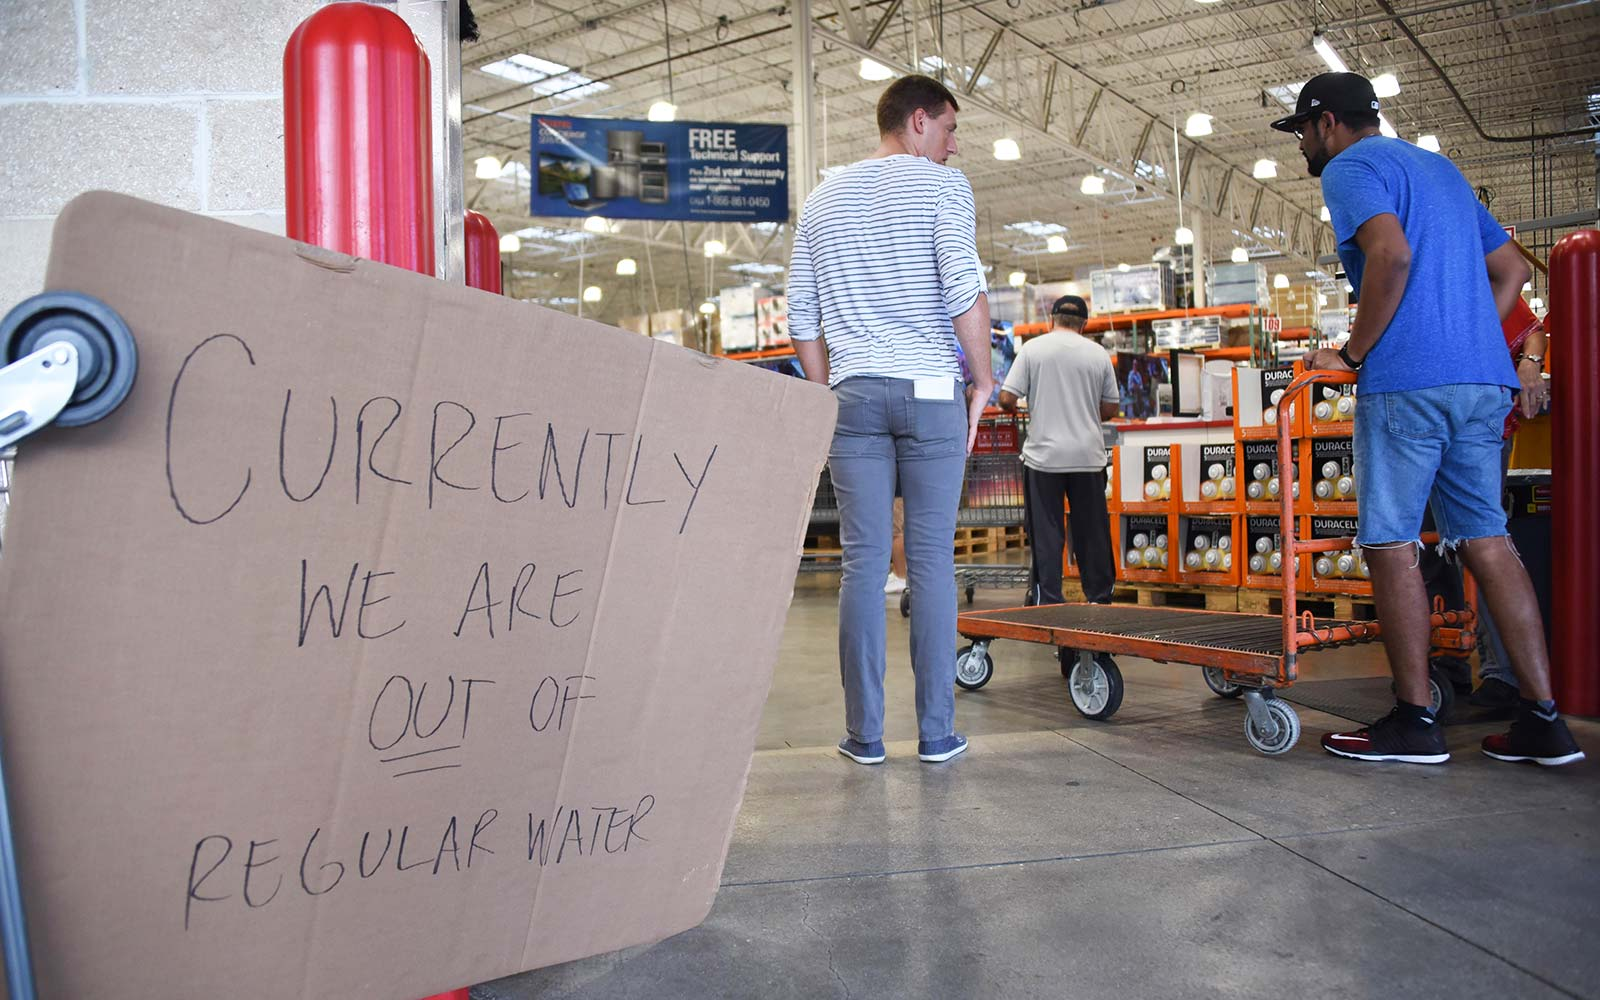 Costco ran out of water as people shop to prepare for Hurricane Irma on September 5, 2017 in North Miami.The monster hurricane coming on the heels of Harvey, which struck Texas and Louisiana late last month, is expected to hit a string of Caribbean islan